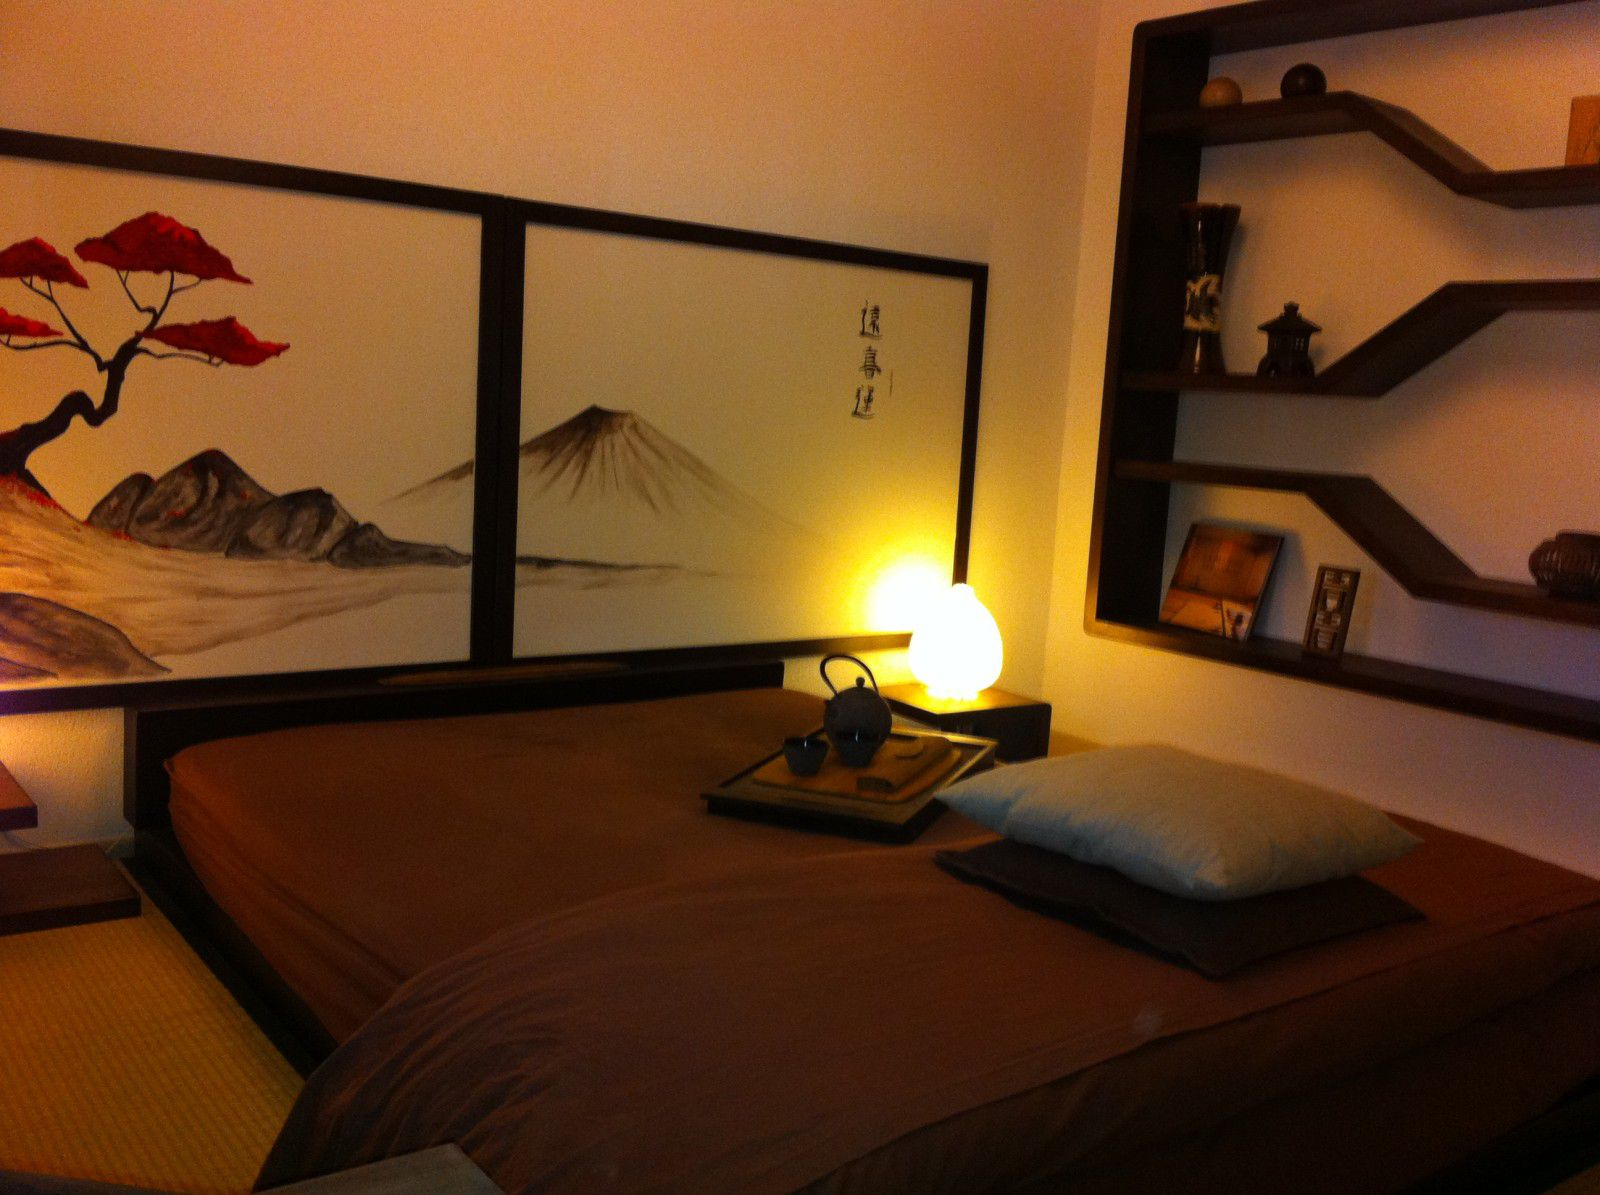 Kyoto zen hayashi cr ation inspiration du japon for Agencement de chambre a coucher